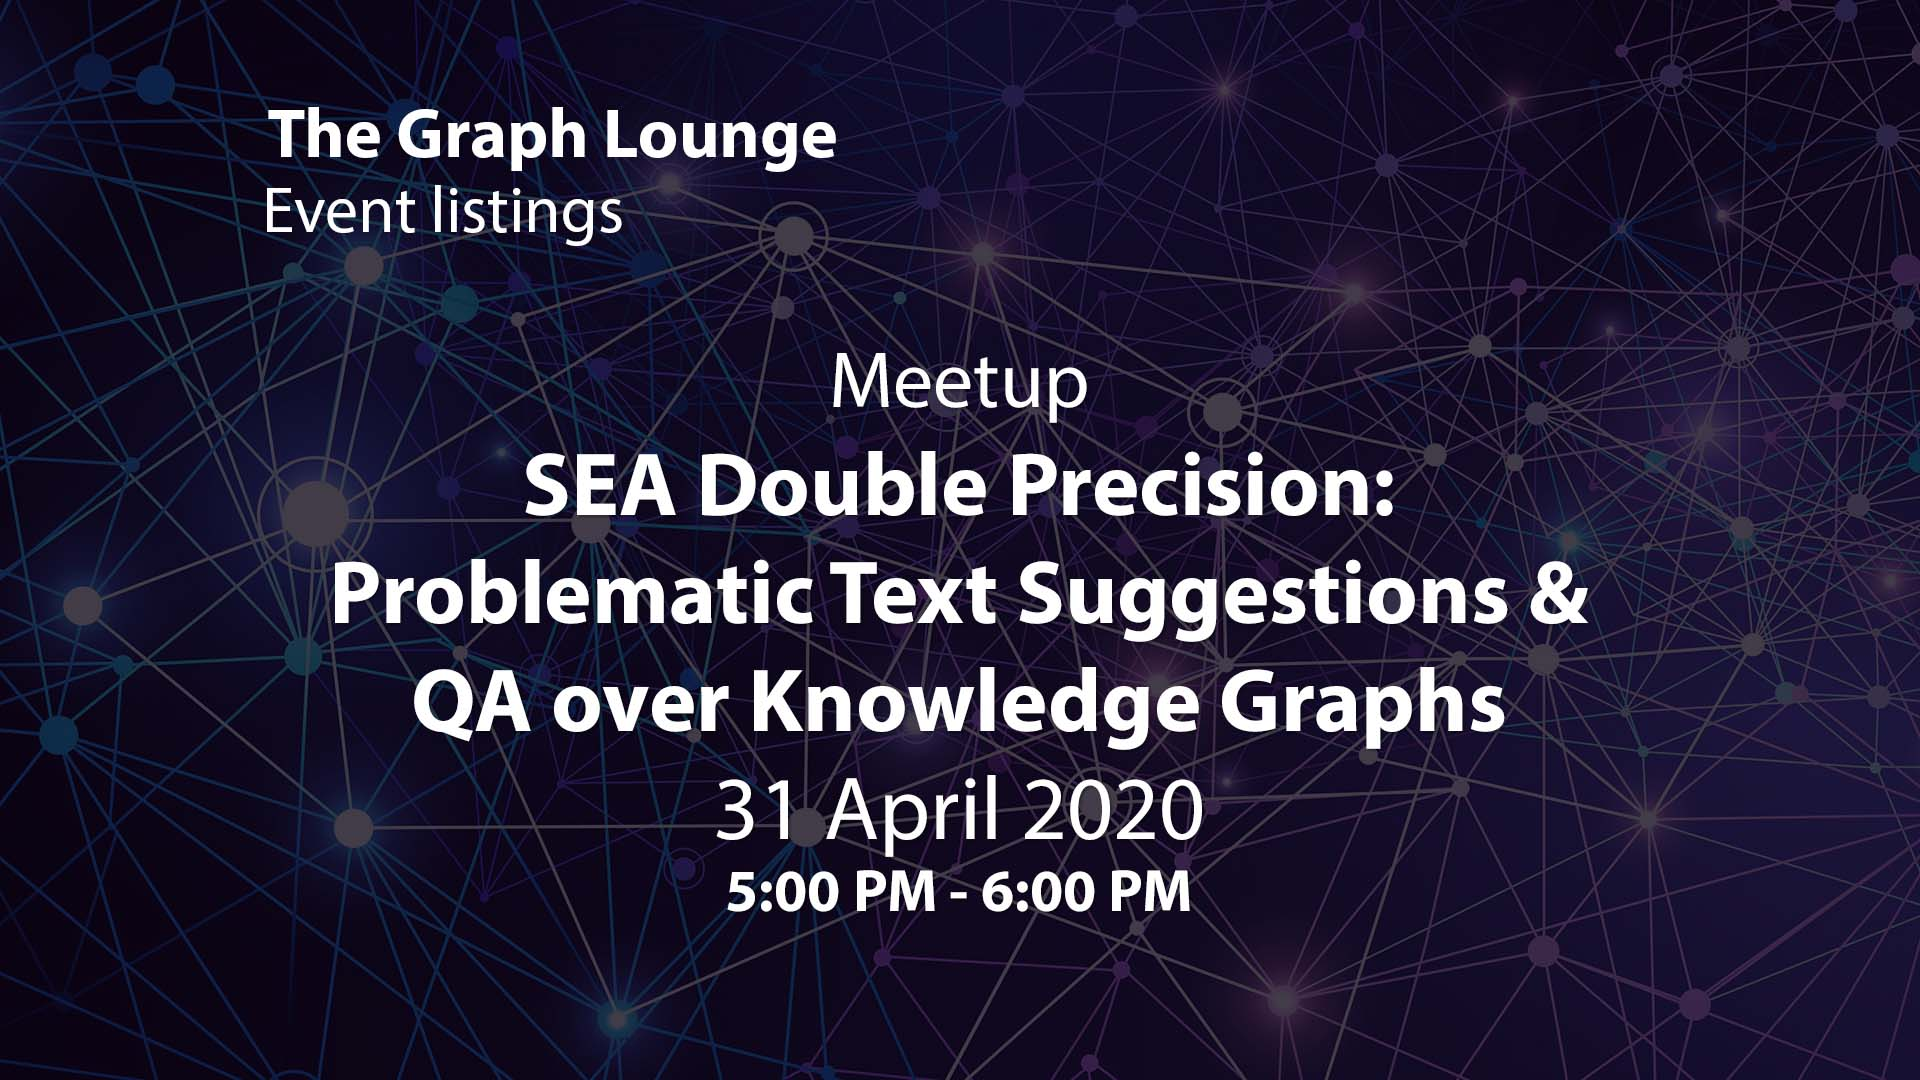 SEA Double Precision: Problematic Text Suggestions & QA over Knowledge Graphs